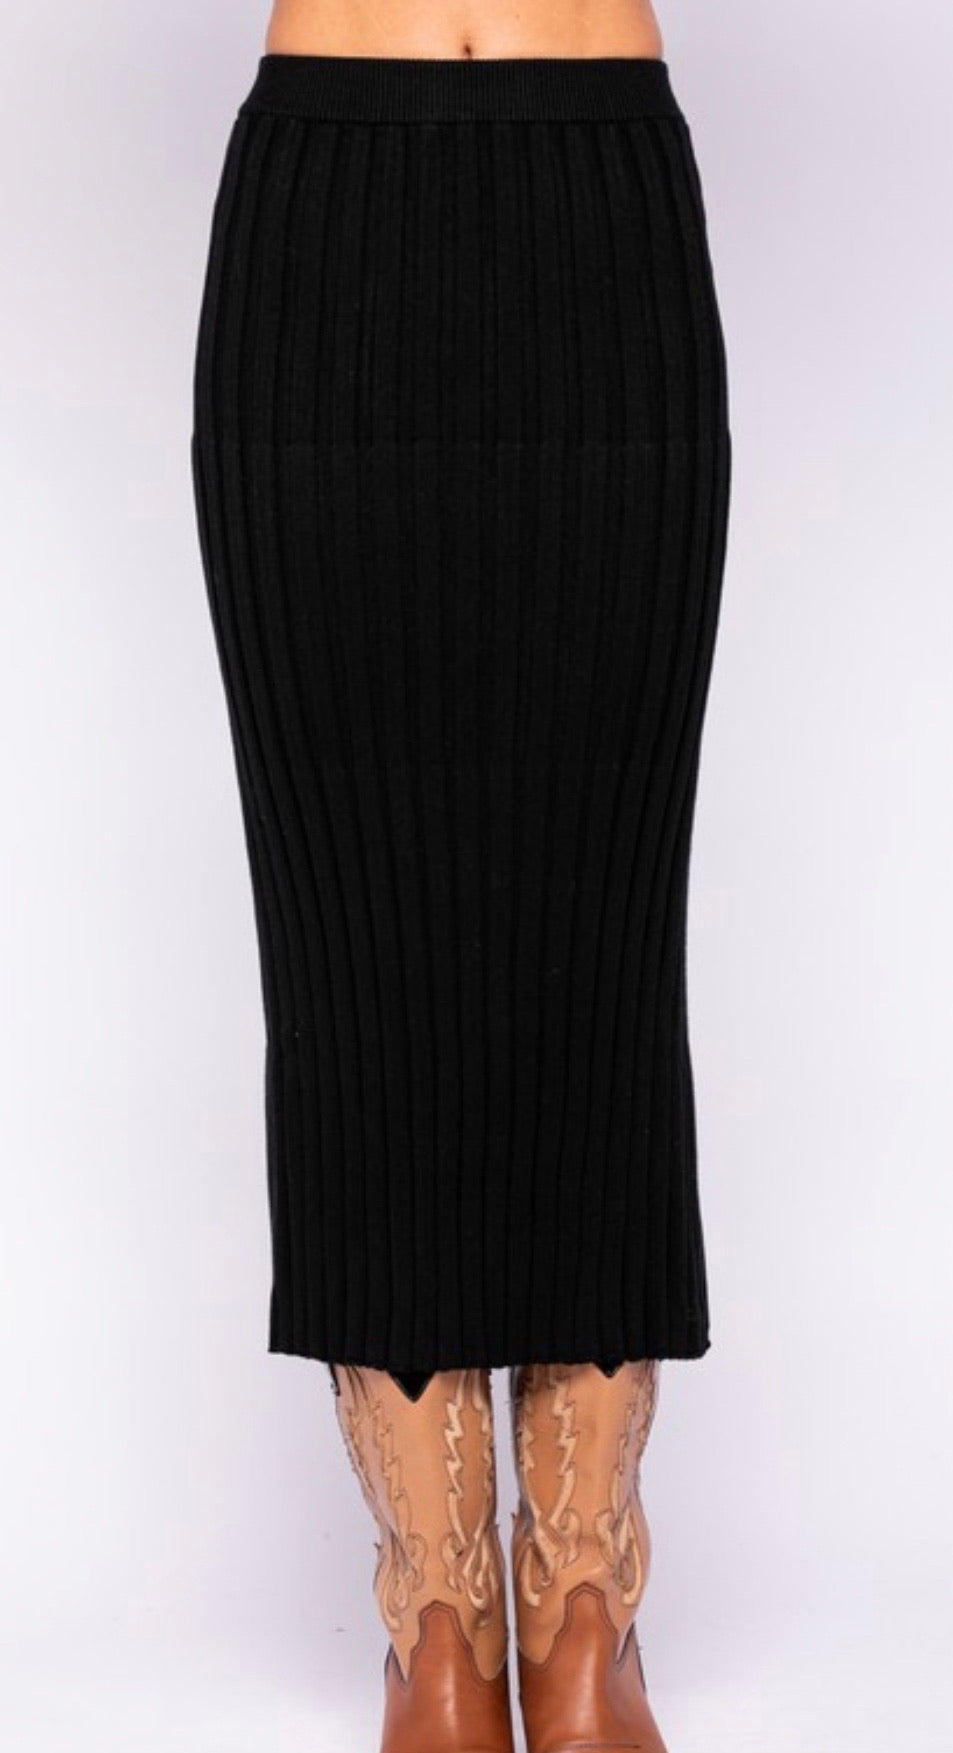 BLACK SLIT LONG SKIRT